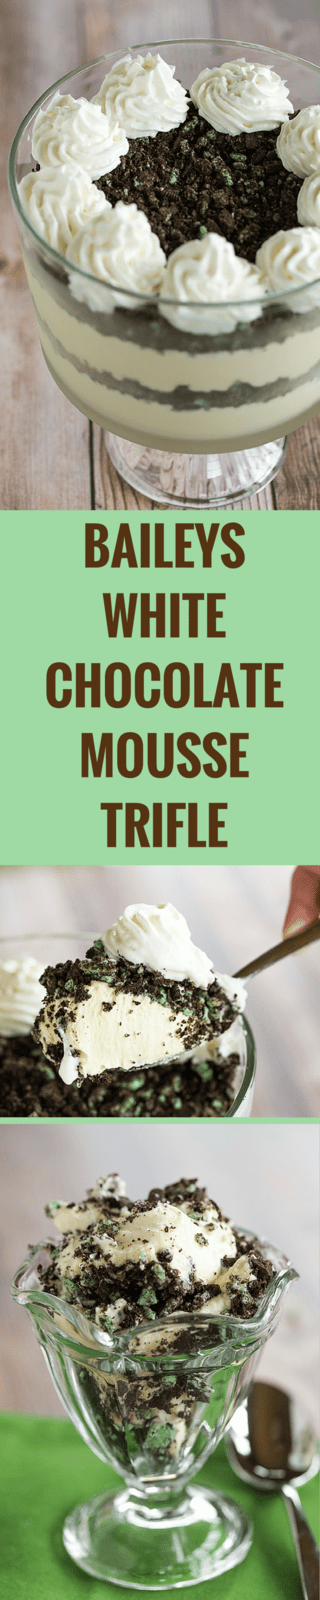 Baileys White Chocolate Mousse - Spiked white chocolate mousse layered into a trifle dish with crushed mint Oreos. An easy dessert for your St. Patrick's Day celebration!